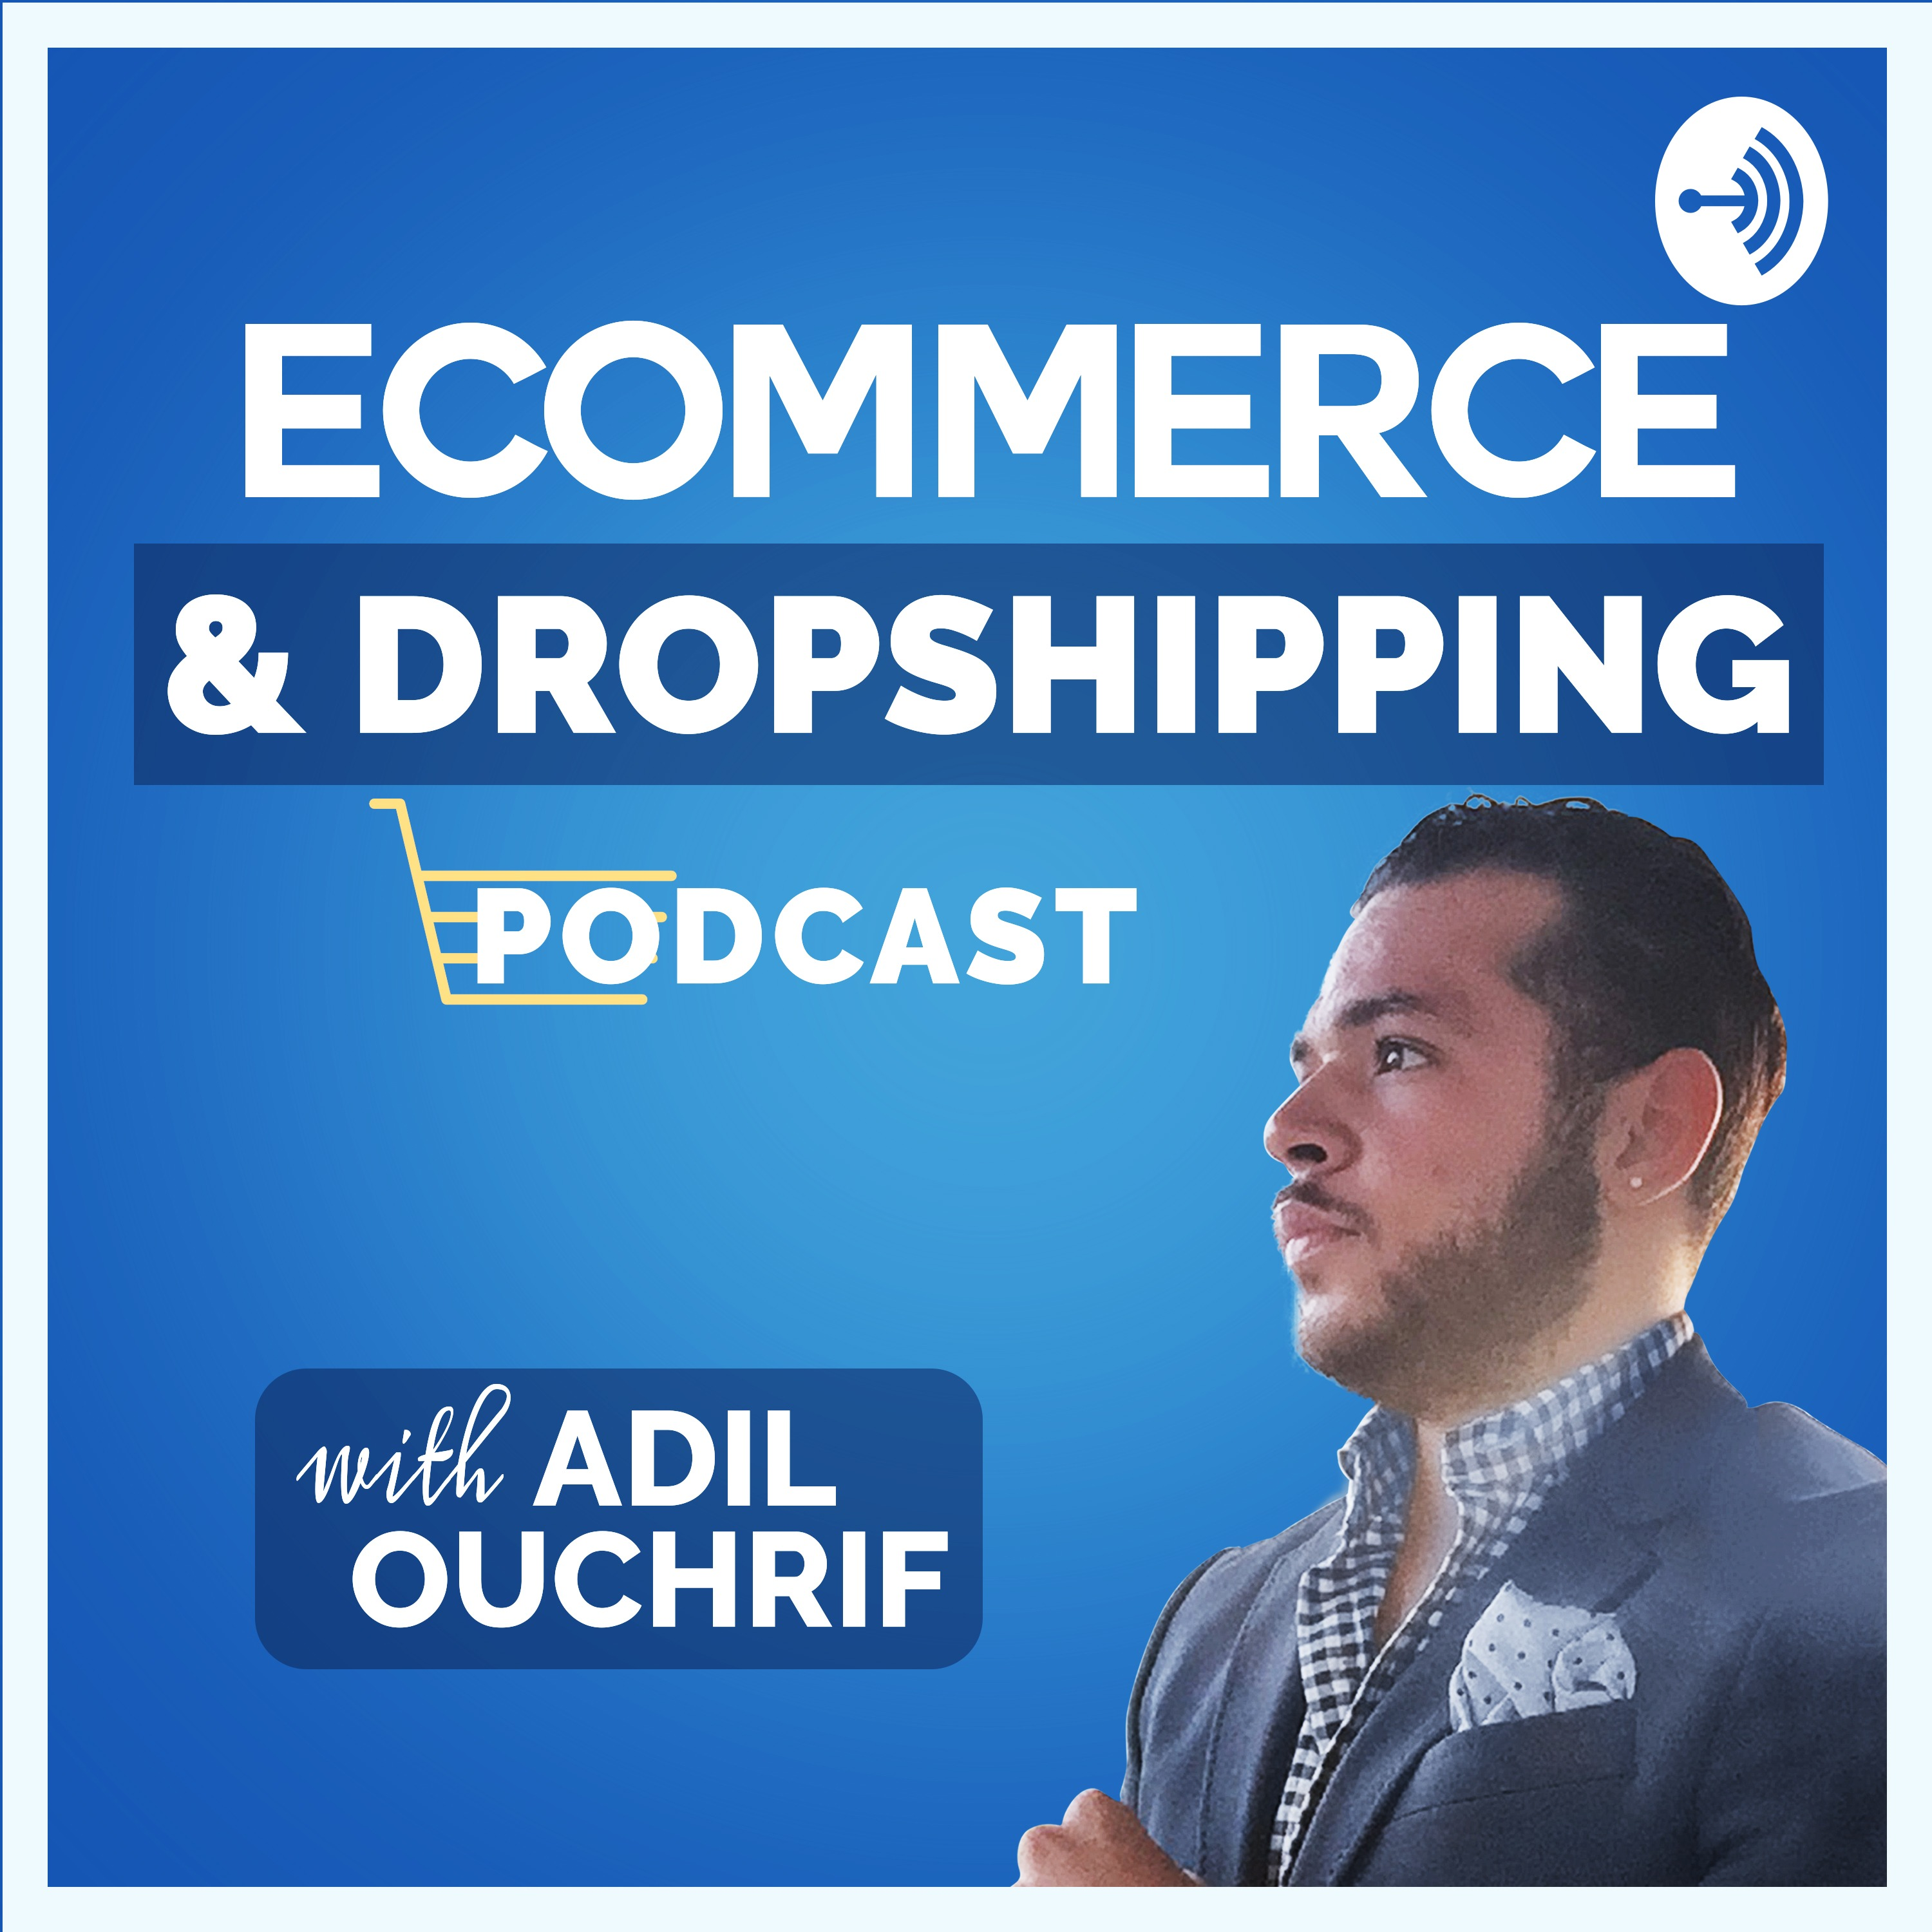 eCommerce & Dropshipping Podcast on Apple Podcasts